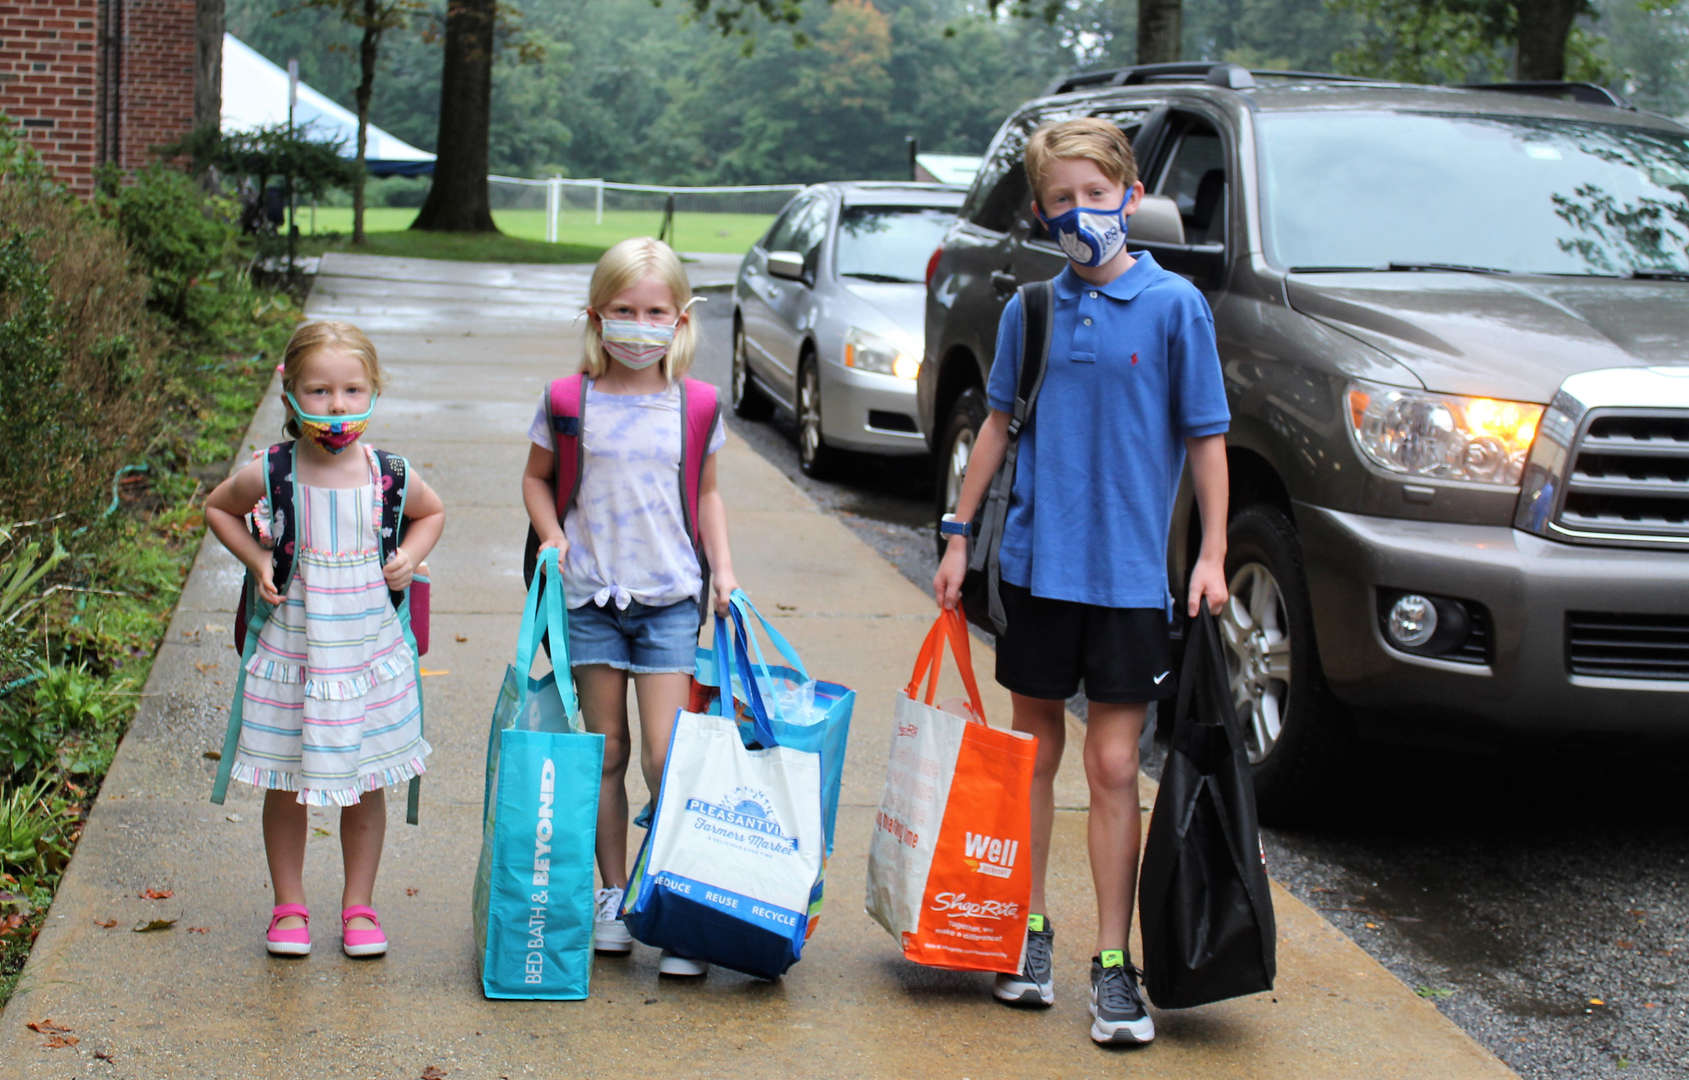 Three siblings walk into school after being dropped off.